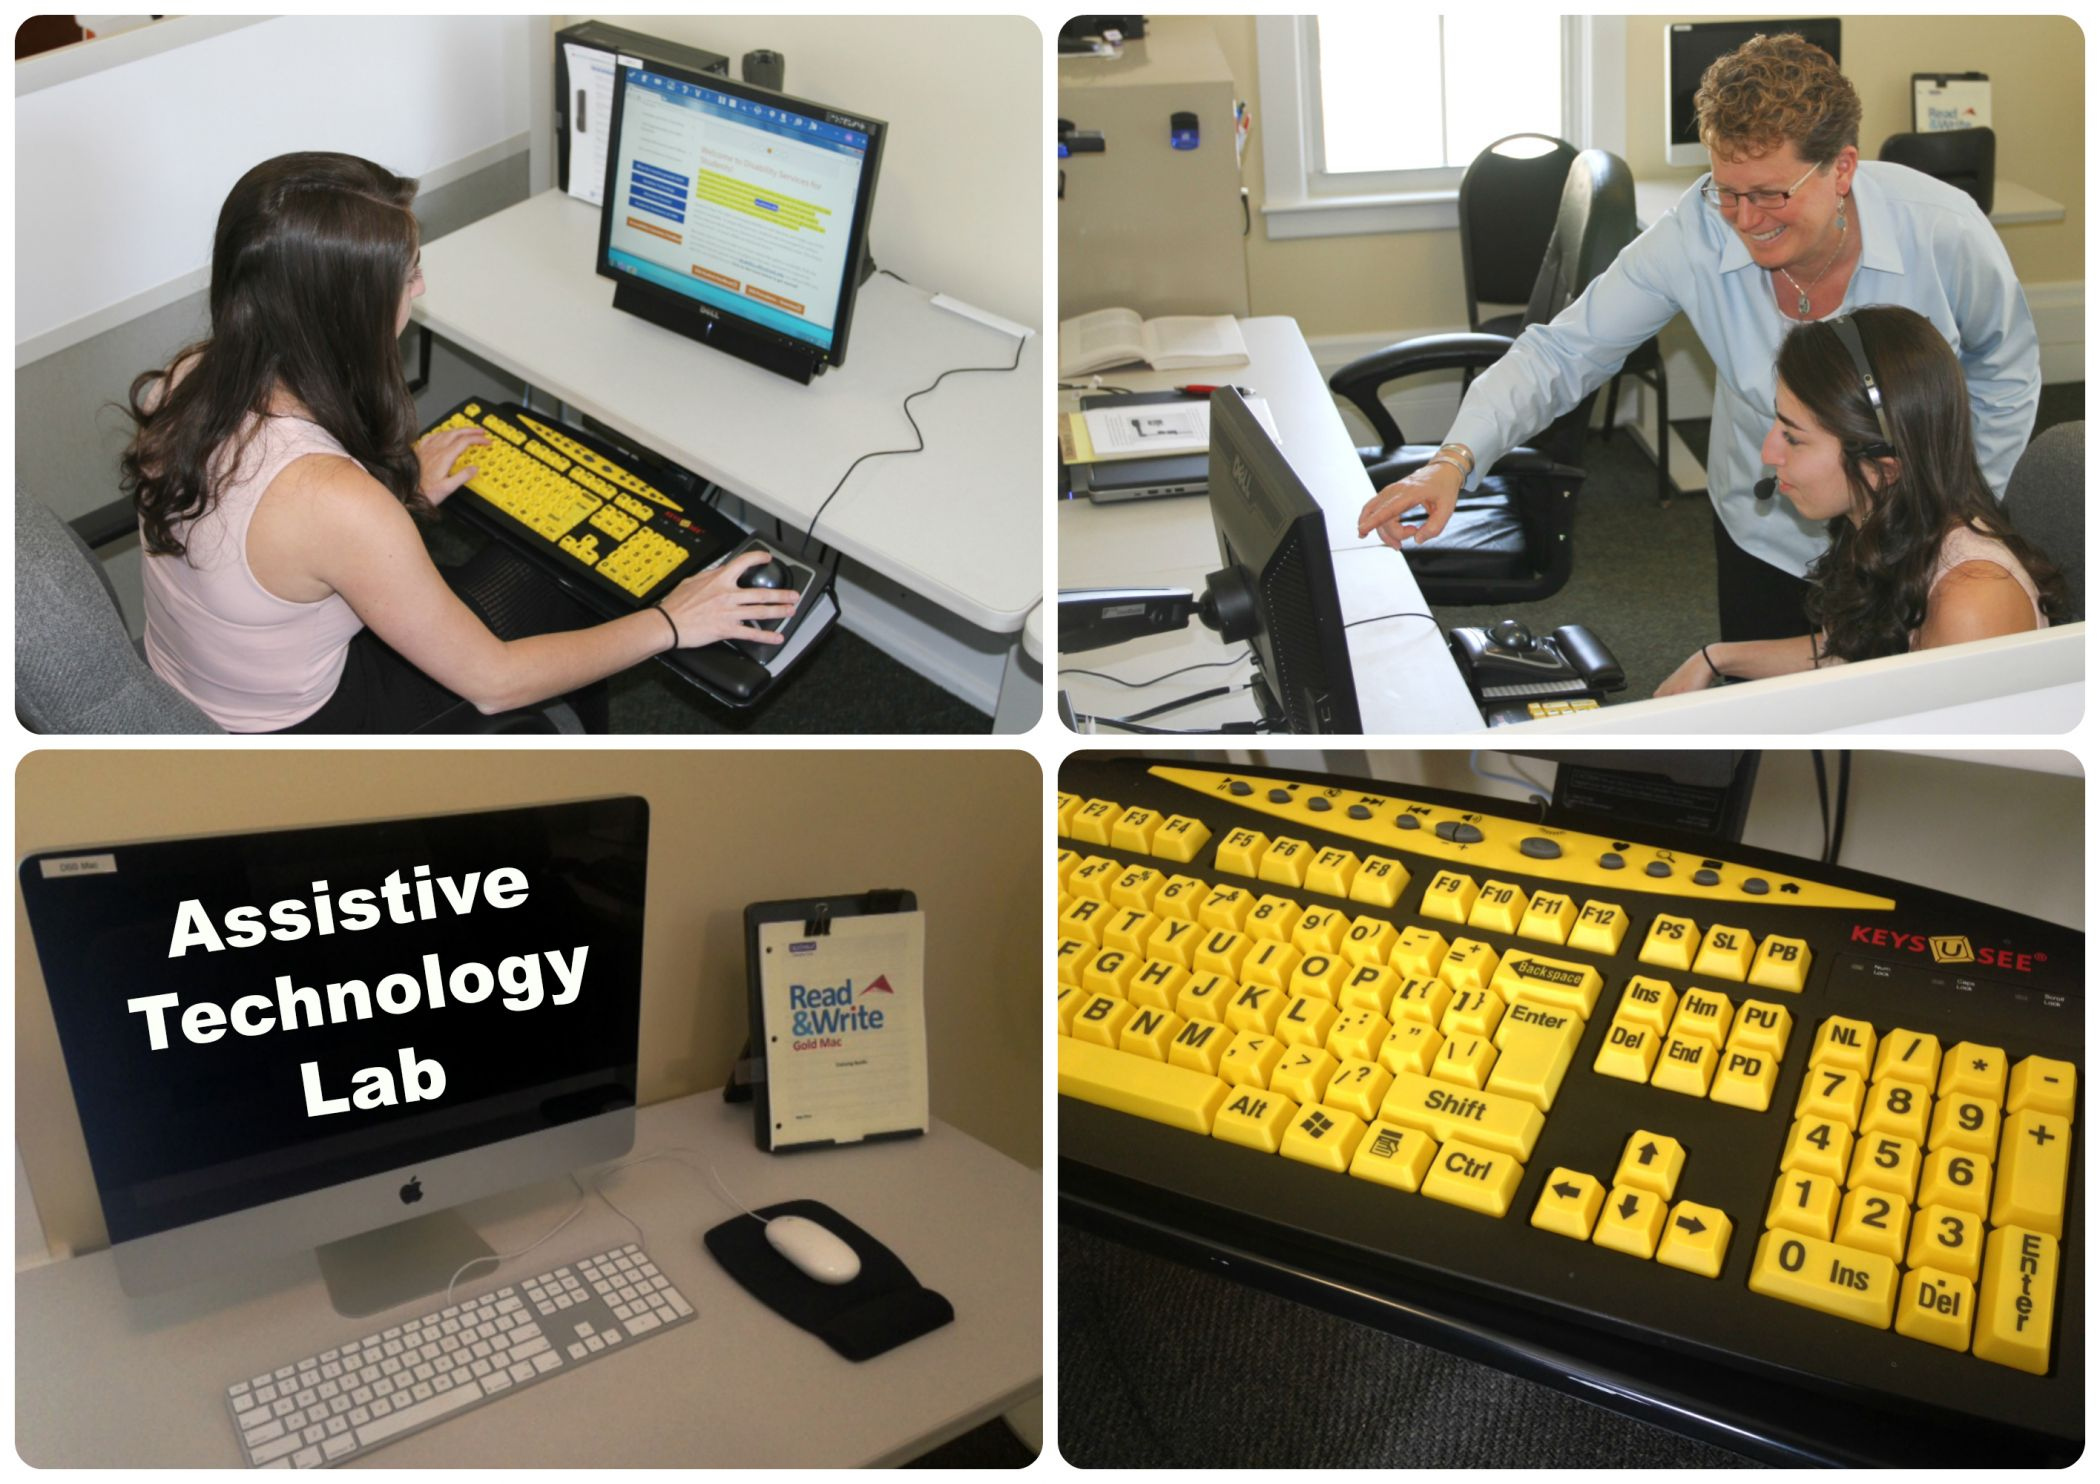 Assistive technology lab with examples of equipment